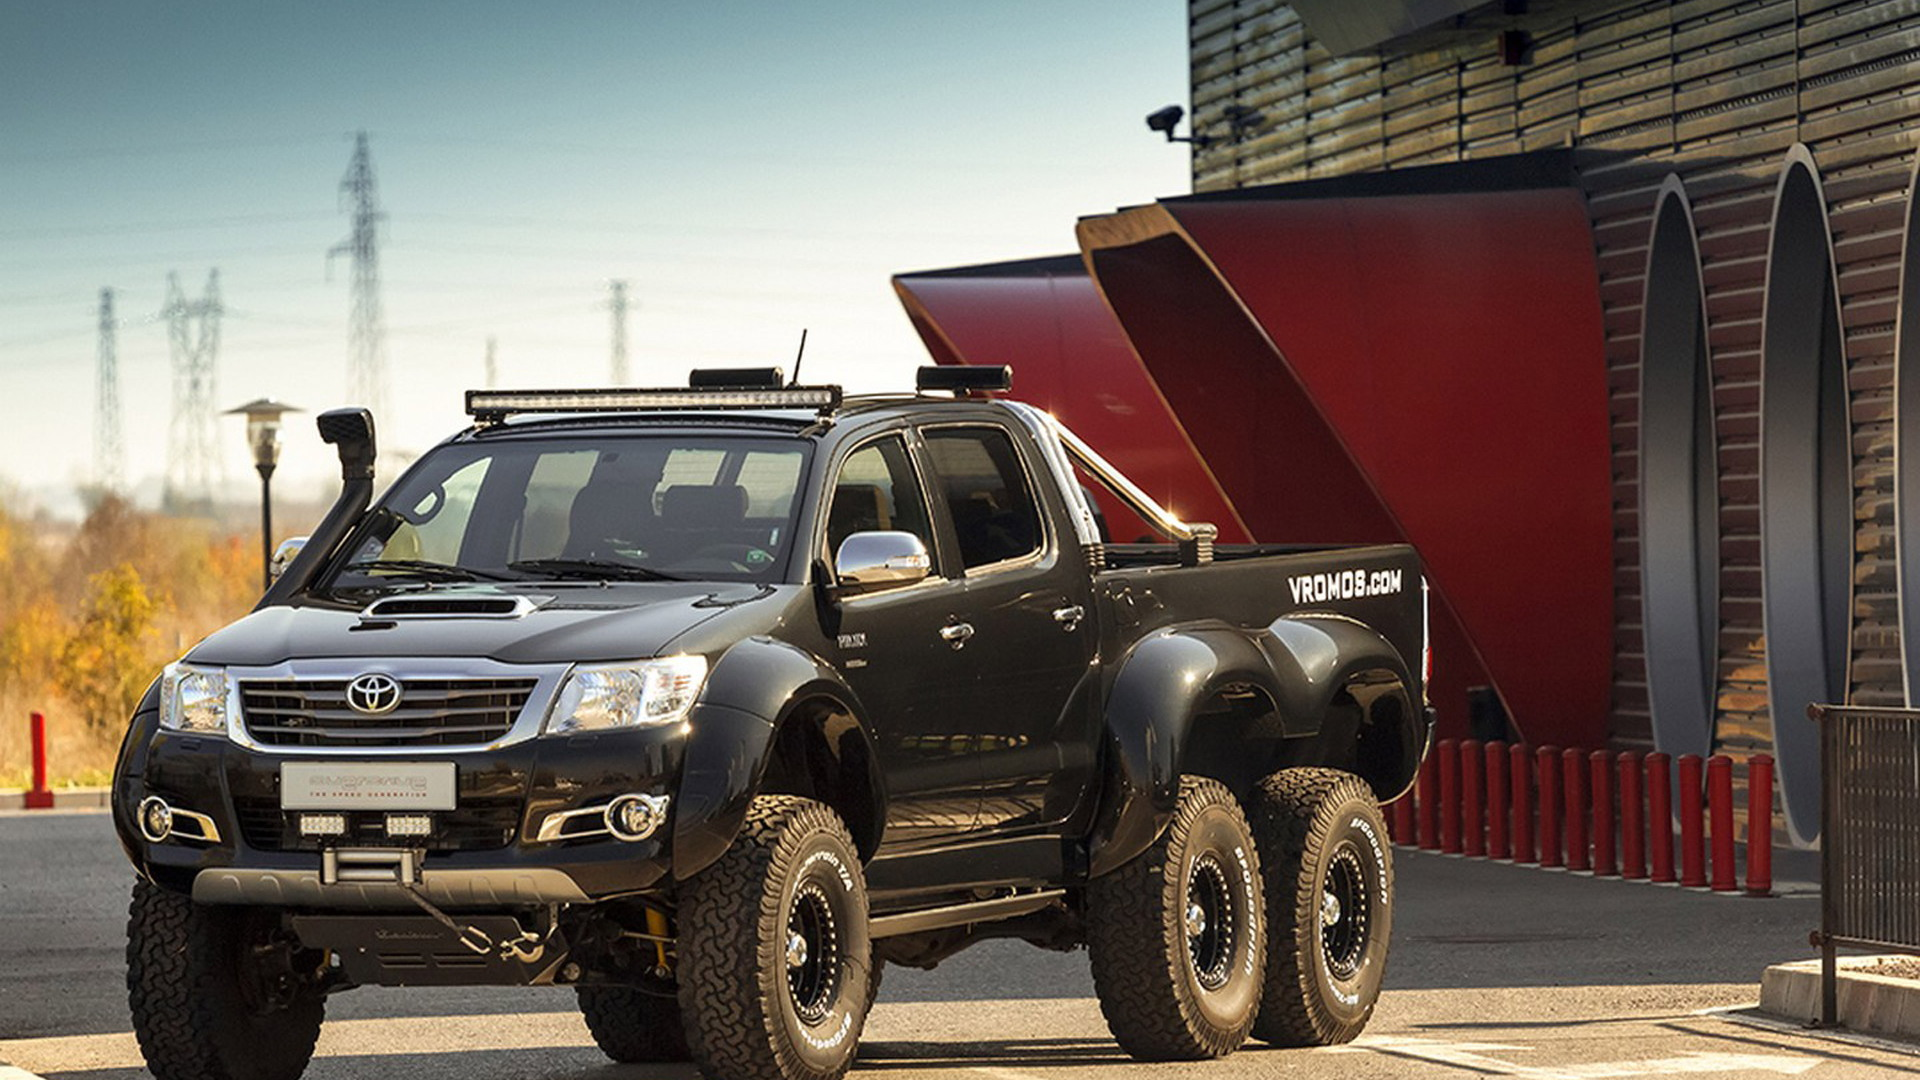 2015 Toyota Hilux 6x6 by Vromos